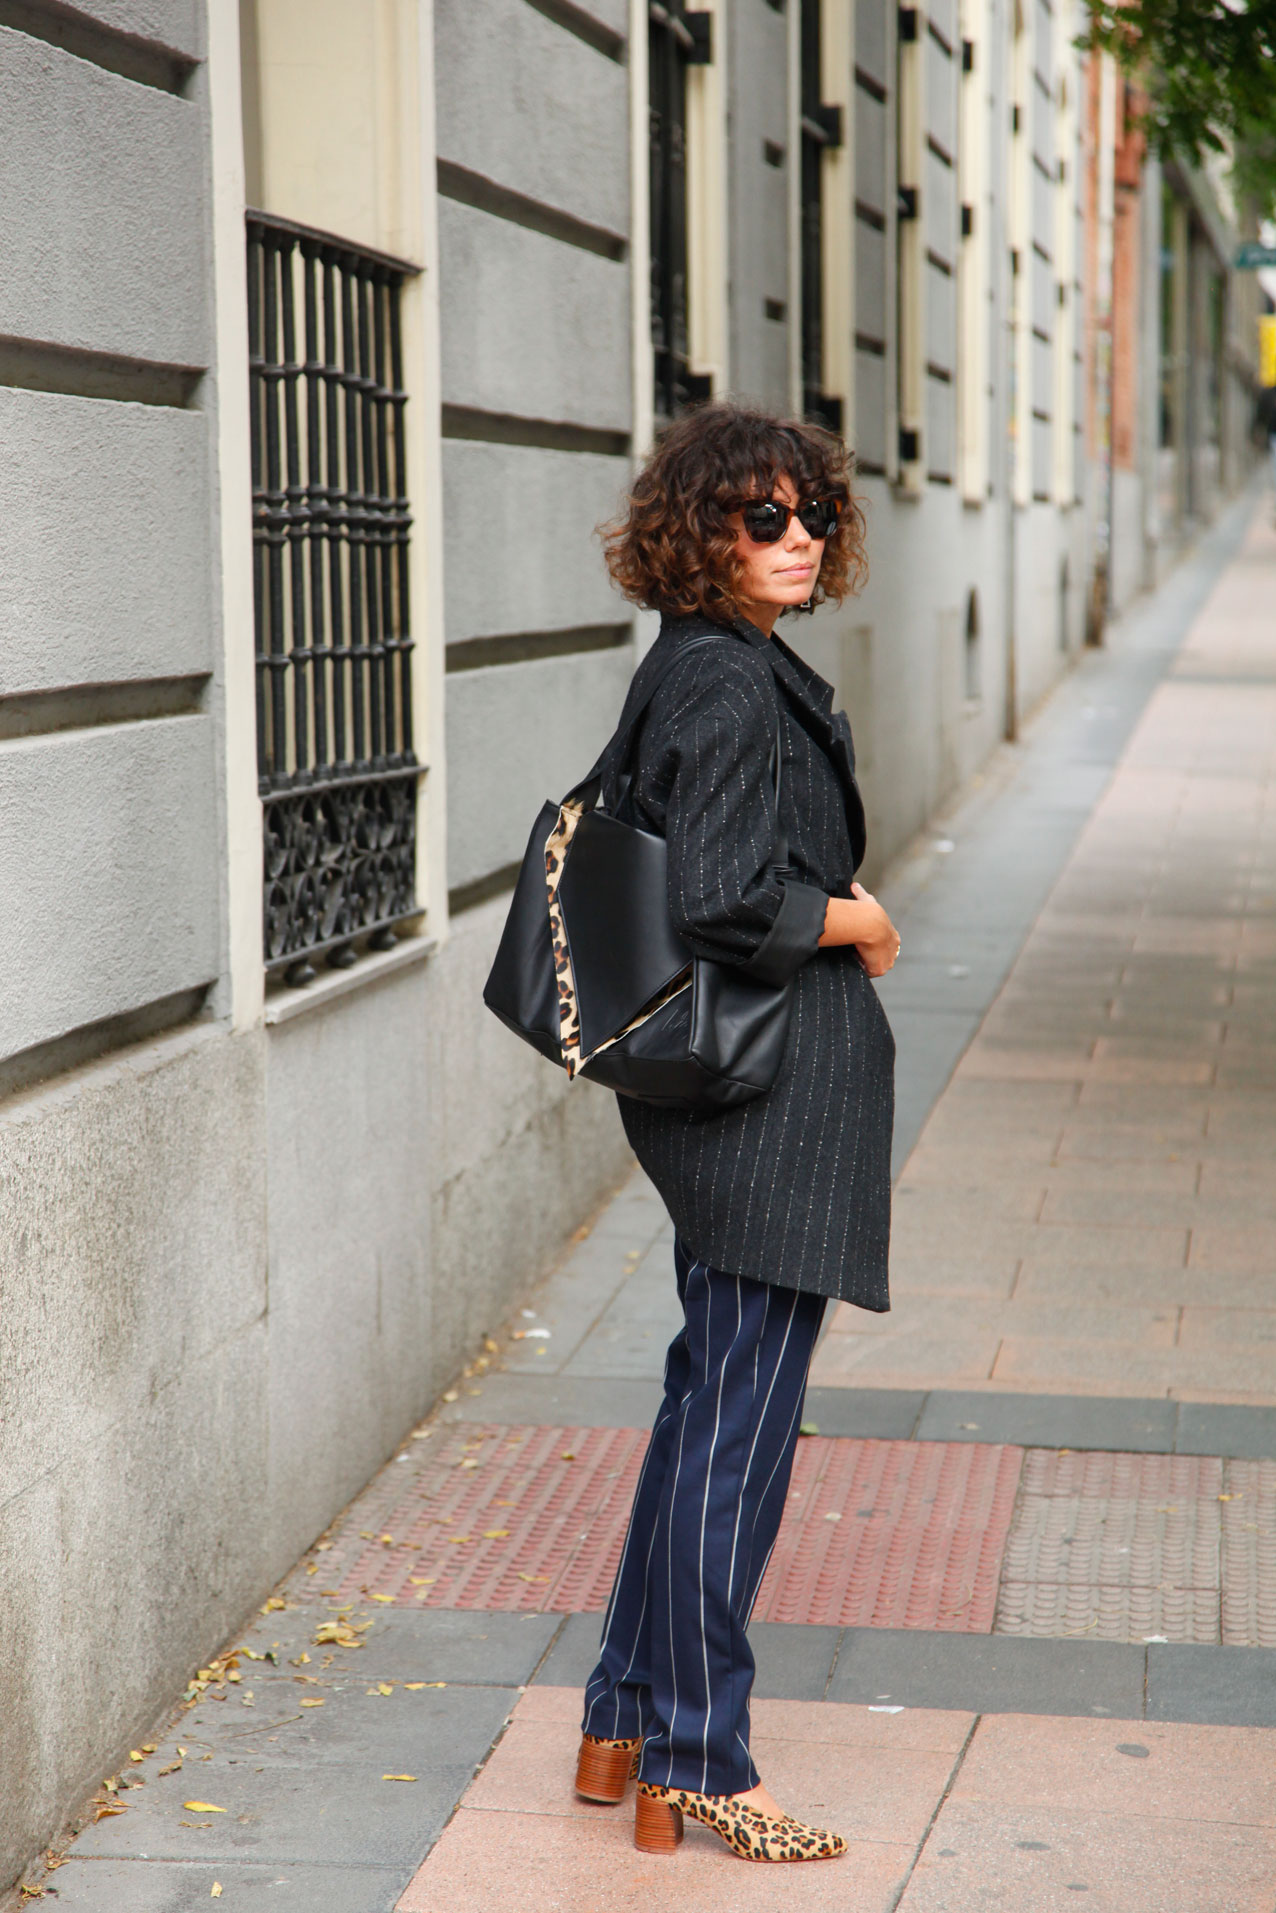 le-muy-mogambo-bag-leopardo-and-siplomatic-metallica-shirt-cool-lemonade-streetstyle8